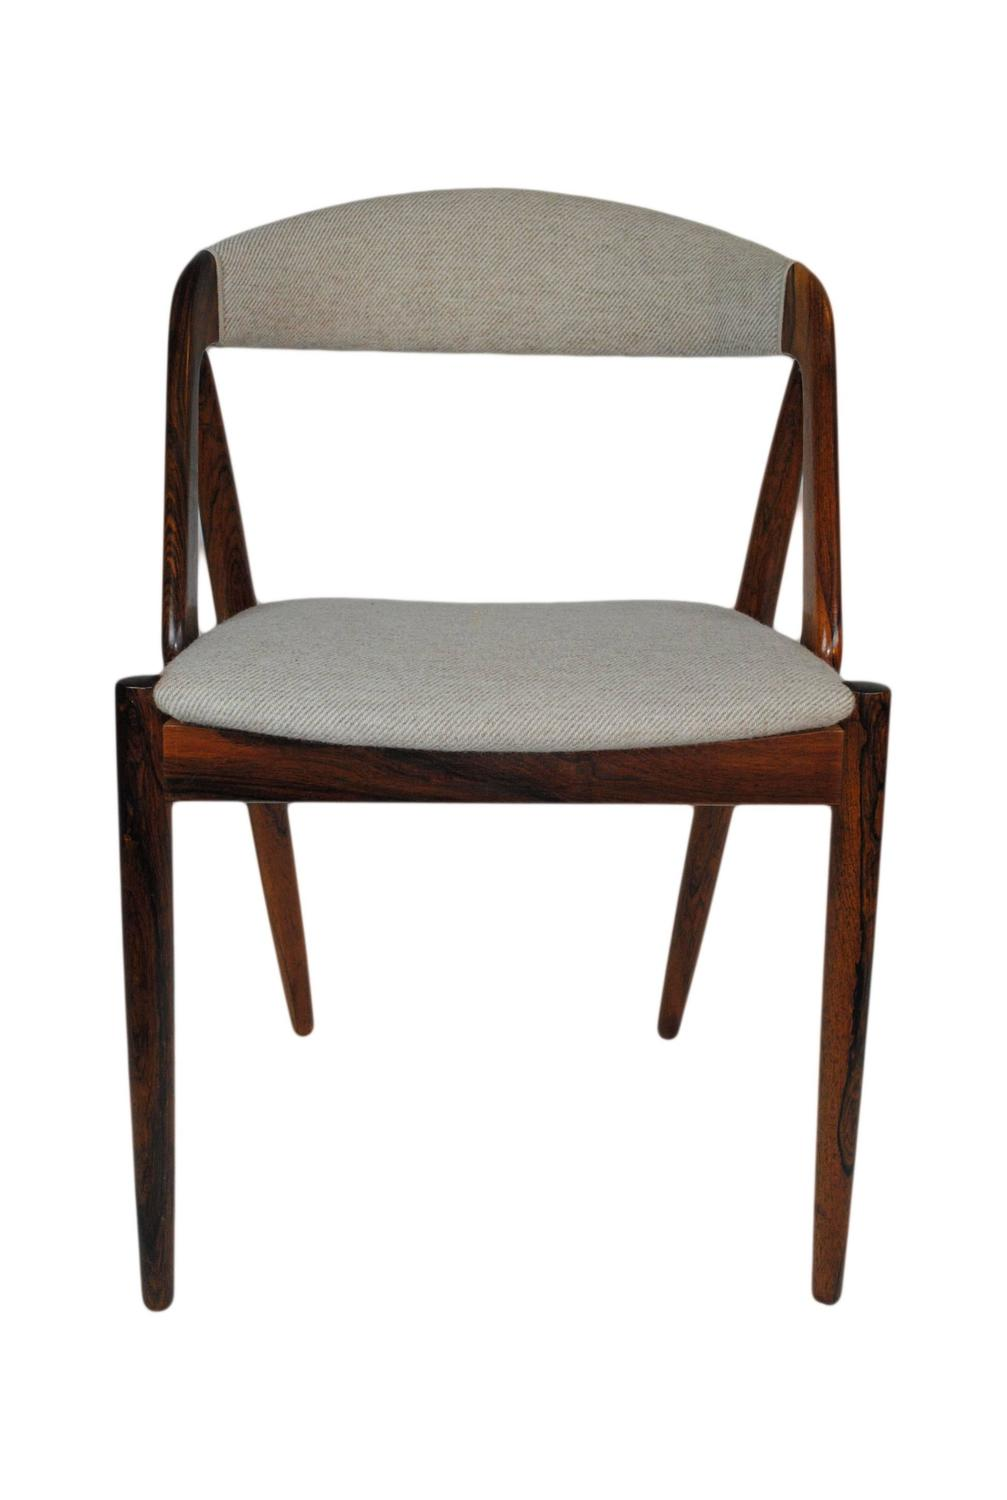 Kai kristiansen brazilian rosewood dining chairs set of four at 1stdibs - Kai kristiansen chairs ...